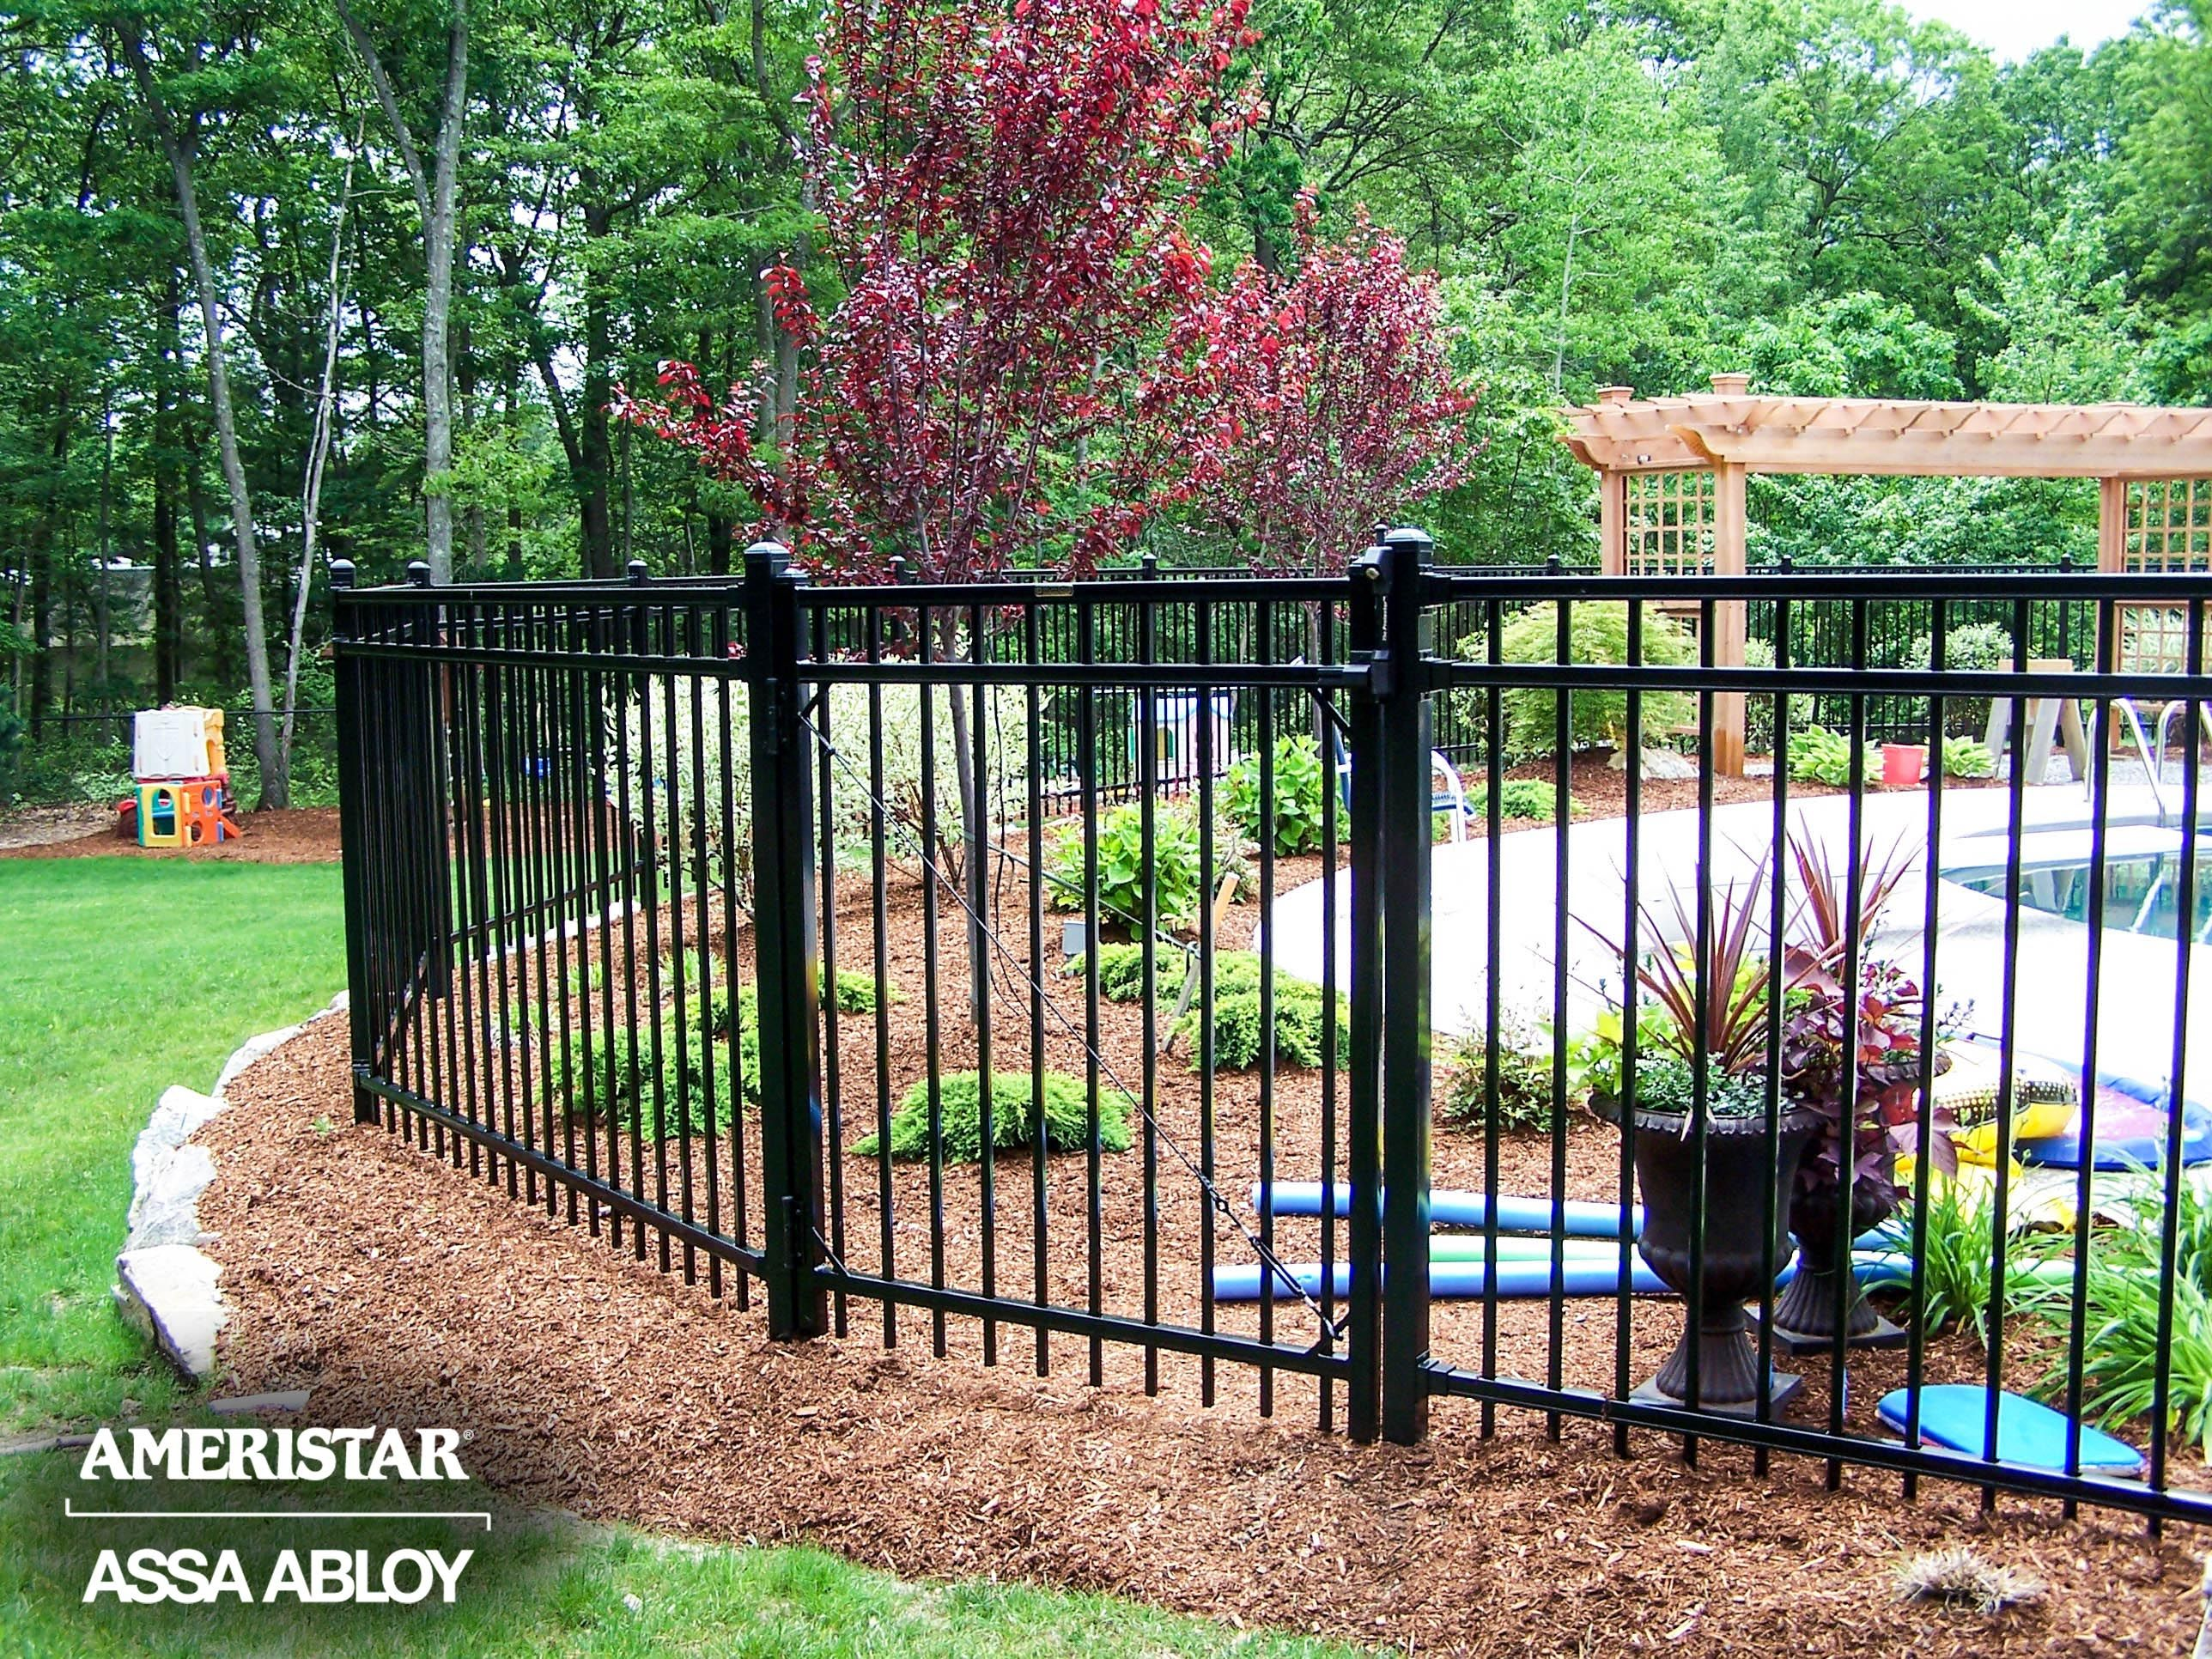 Black Classic Wrought Iron Fence And Gate In Backyard Ameristar Montage Fenced Wrought Iron Pool Fence Wrought Iron Fences Iron Fence